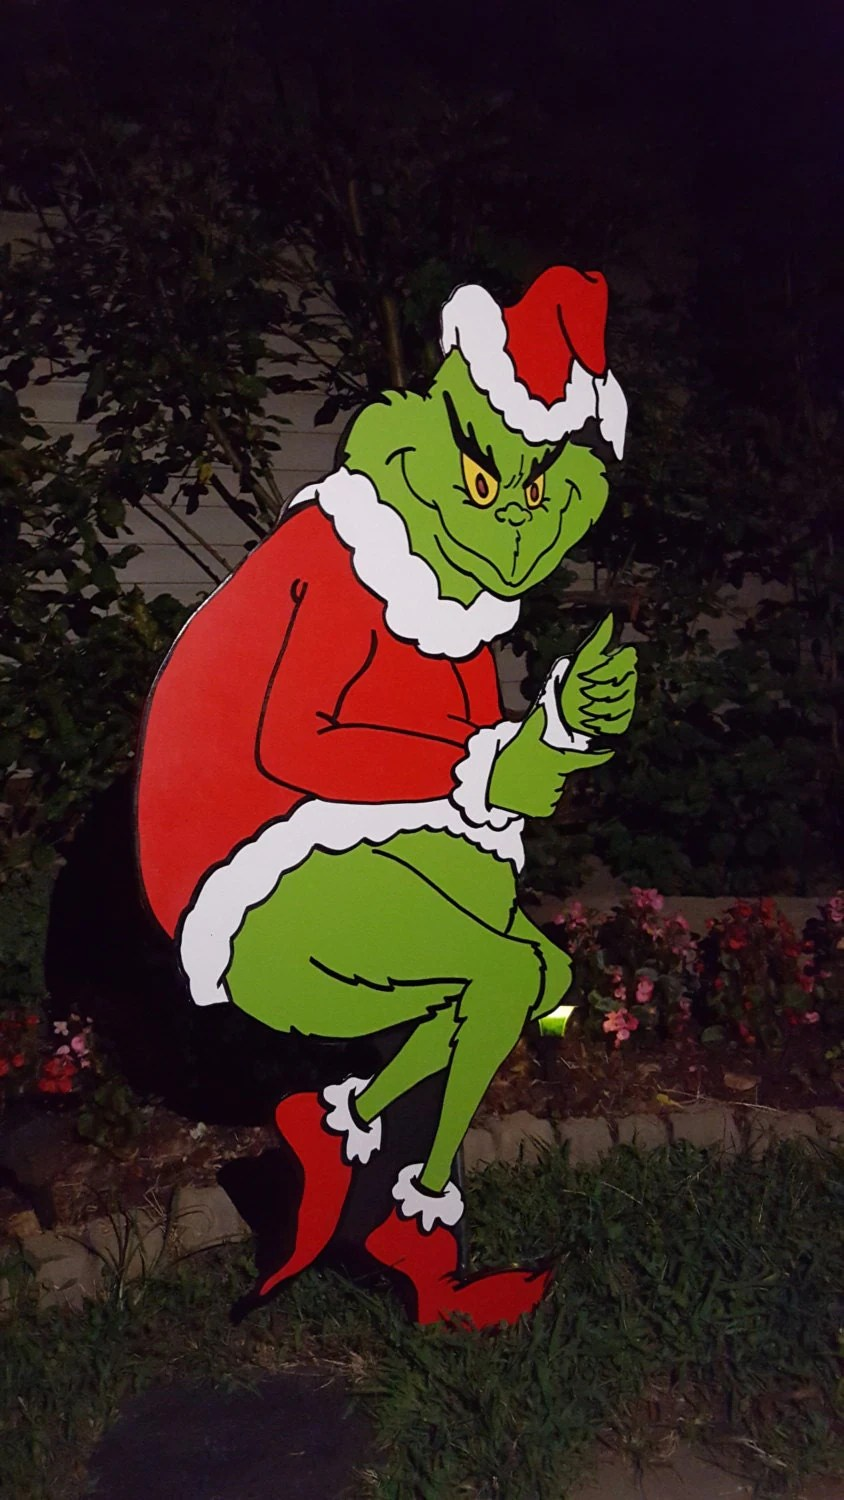 grinch stealing christmas lights template - Grinch Stealing Christmas Lights